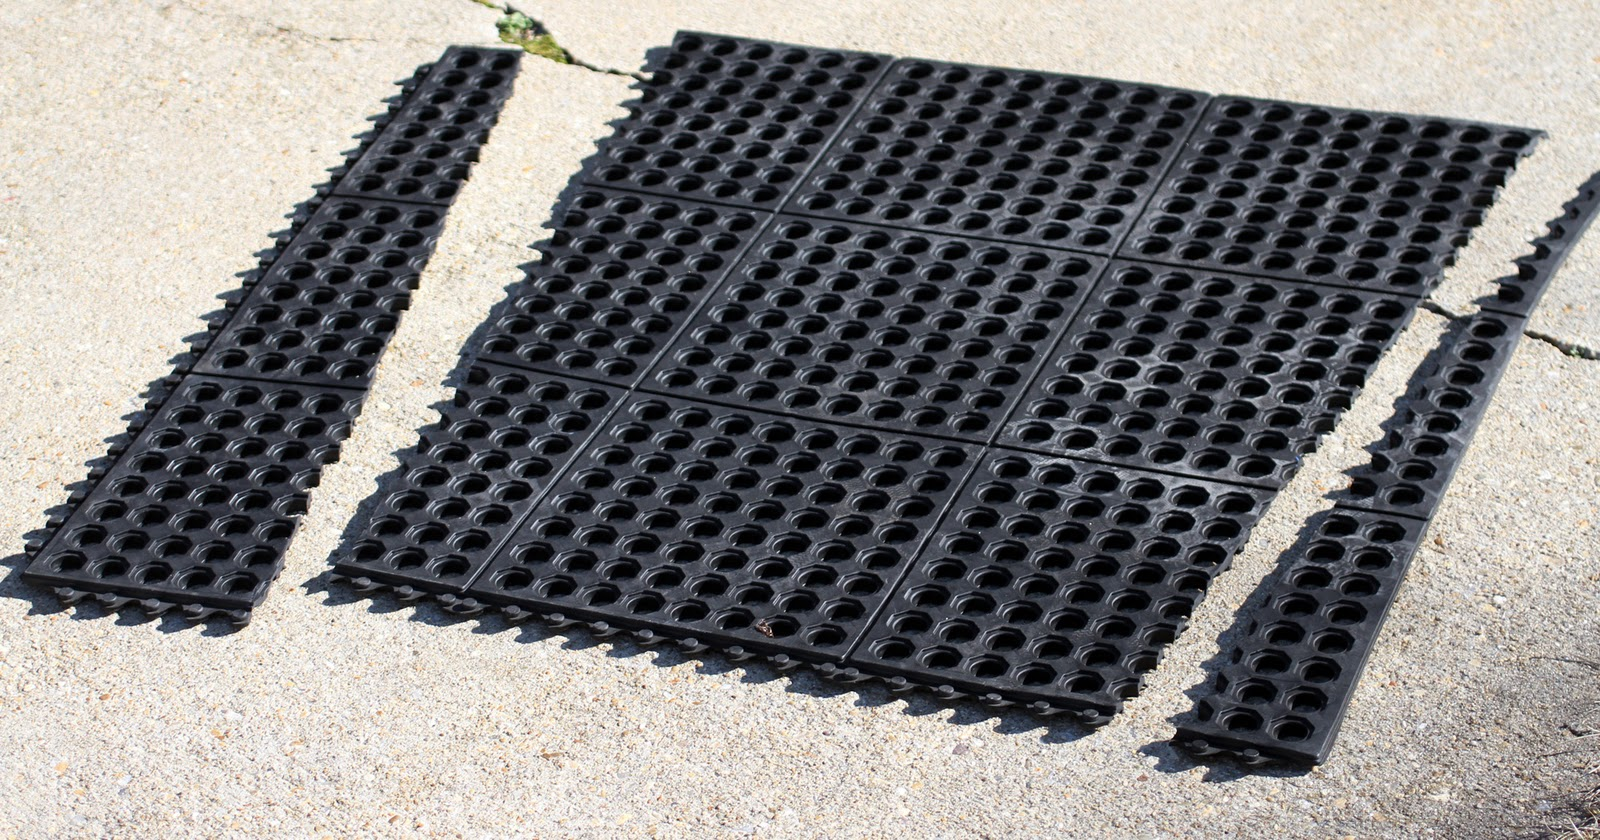 Rubber floor mats for boats - This Nice Thick Layer Of Rubber Will Be A Nice Cushion As We Bounce Down The Highway I Think It Will Work Very Well This Mat Runs Back About Two Thirds